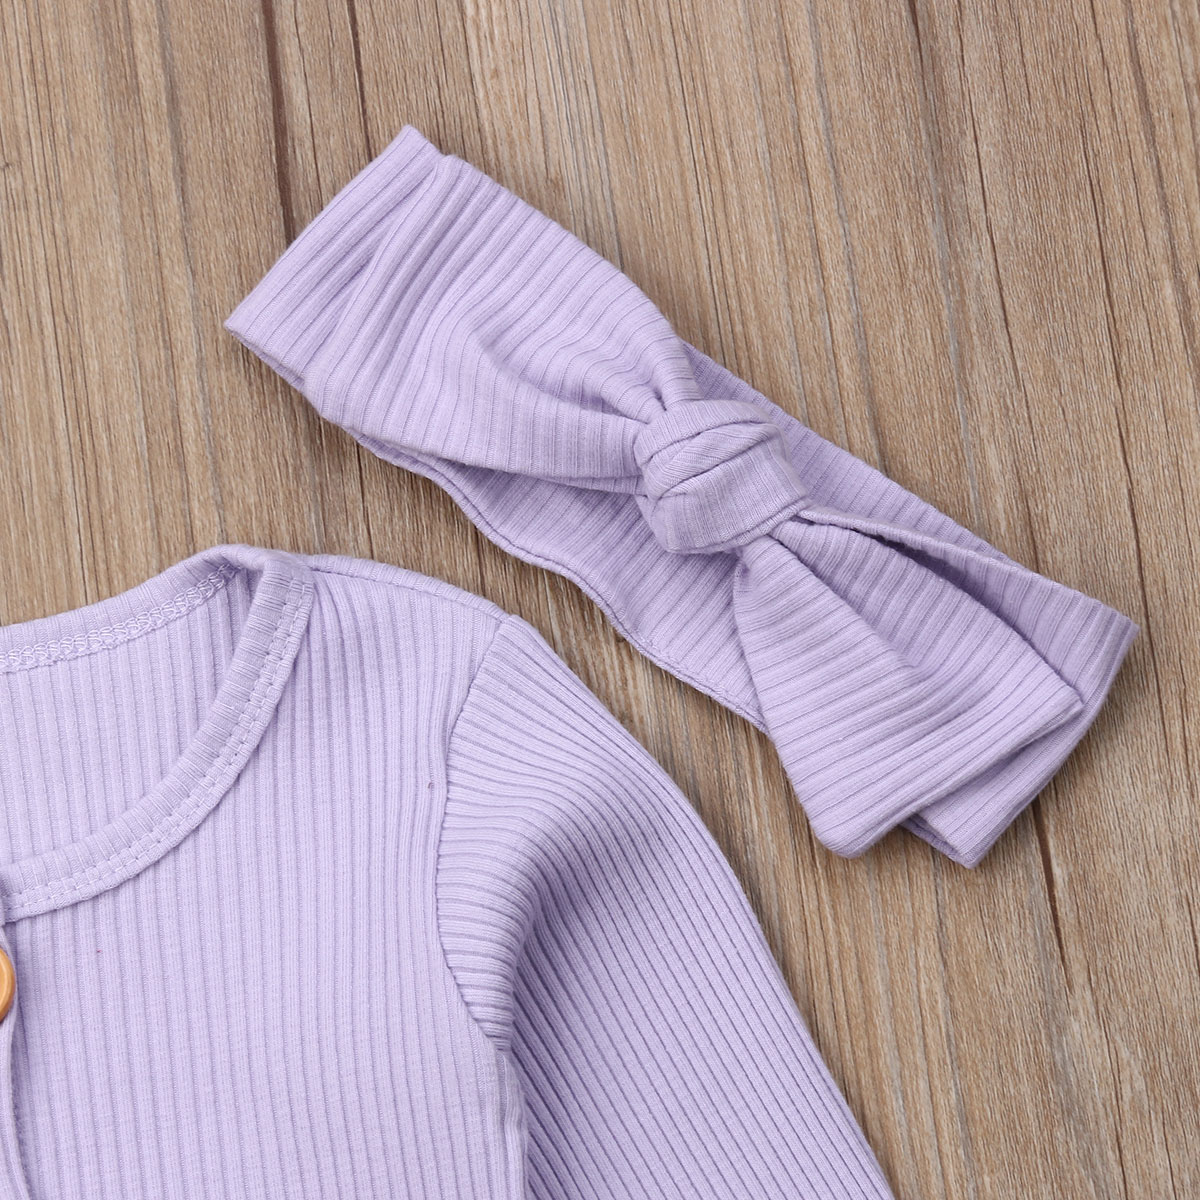 H52a25d3a20af4fd1bcdd332863fa11a9c Spring Fall Newborn Baby Girl Boy Clothes Long Sleeve Knitted Romper + Headband Jumpsuit 2PCS Outfit 0-24M